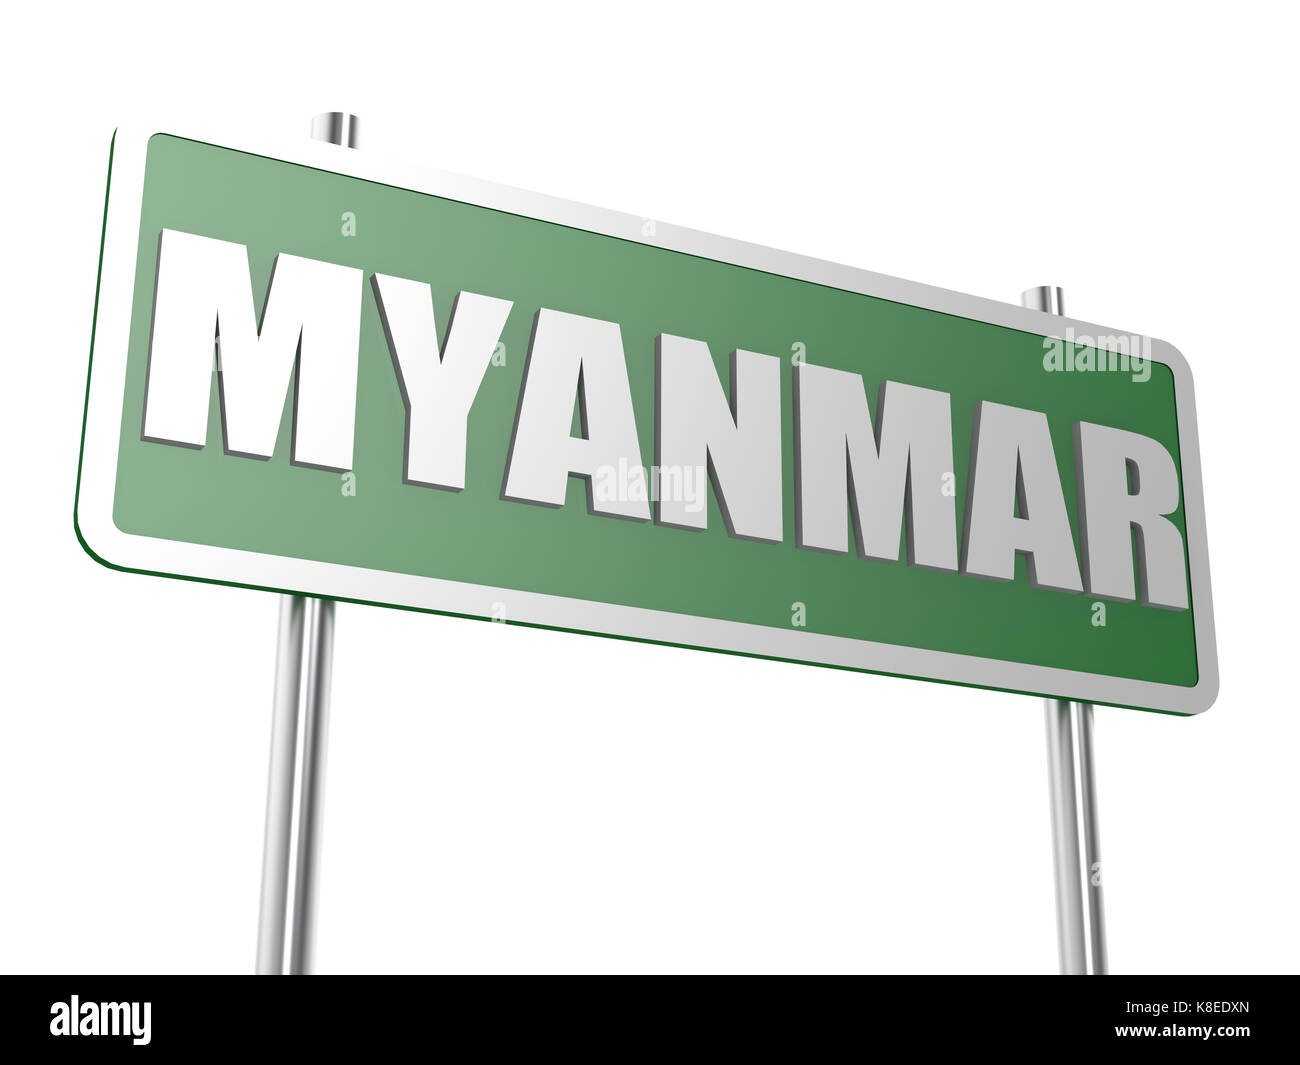 Myanmar concept image with hi-res rendered artwork that could be used for any graphic design. - Stock Image